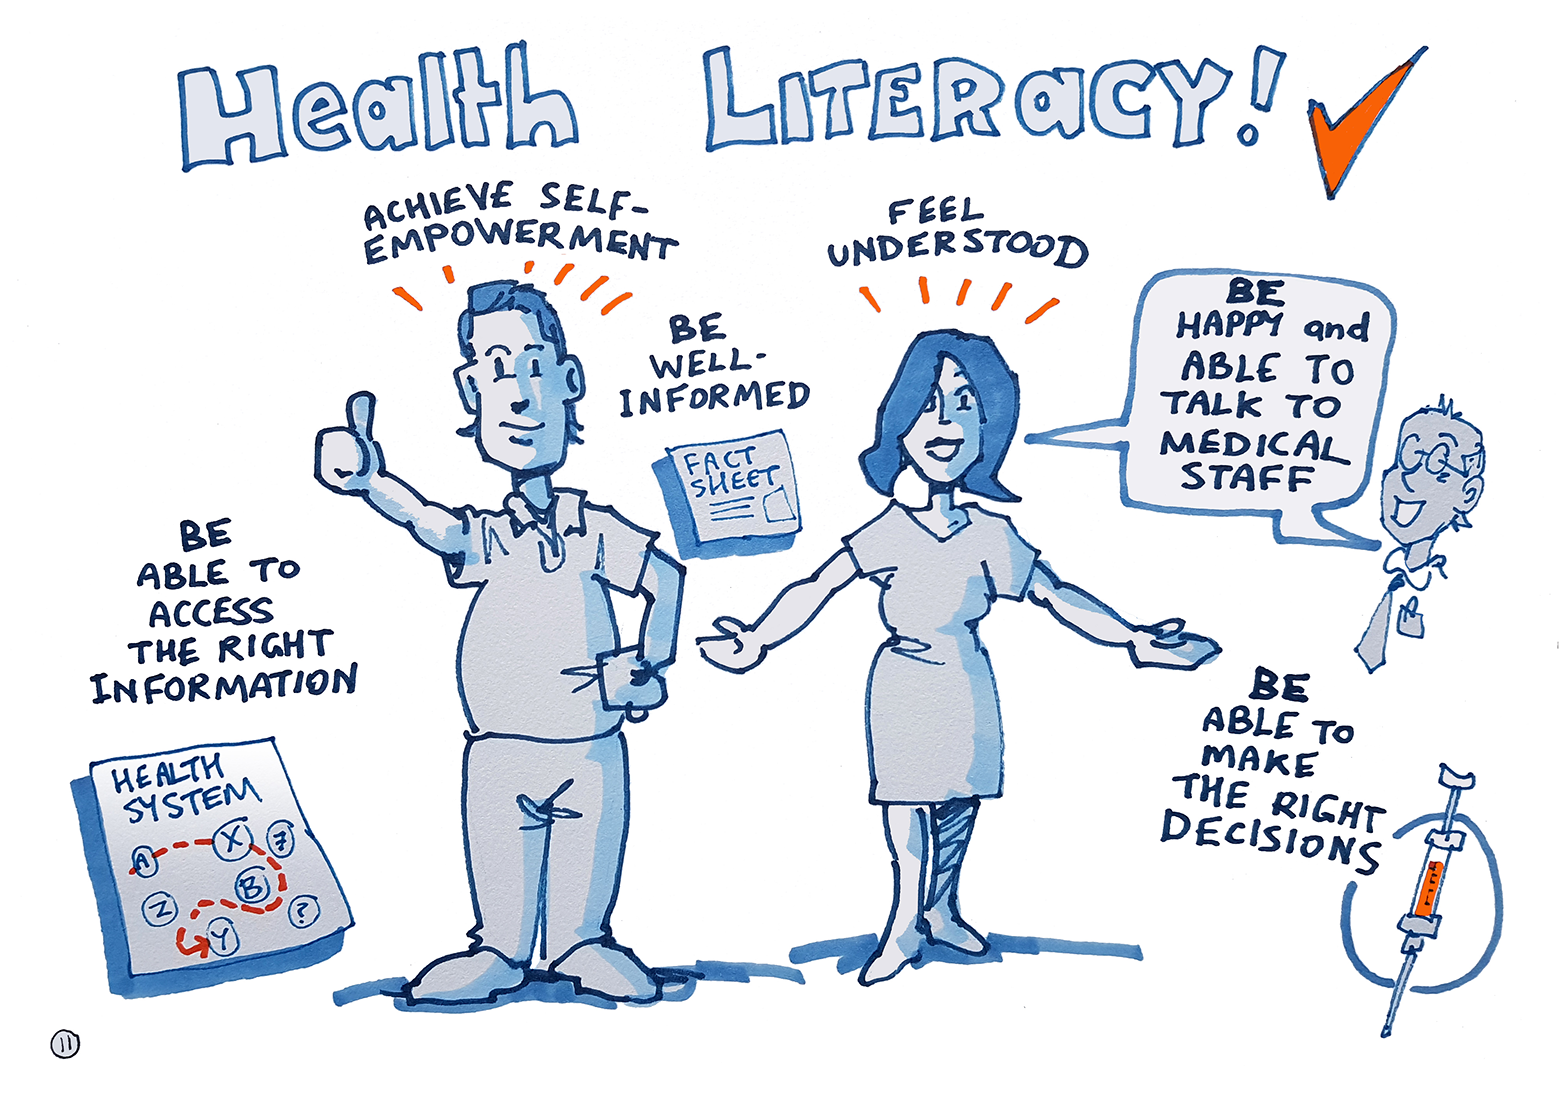 health literacy in the usa Health literacy around the world: part 1 health literacy efforts outside of the united states1 by andrew pleasant, phd director of health literacy and research canyon ranch institute tucson, arizona health literacy efforts in the united states.